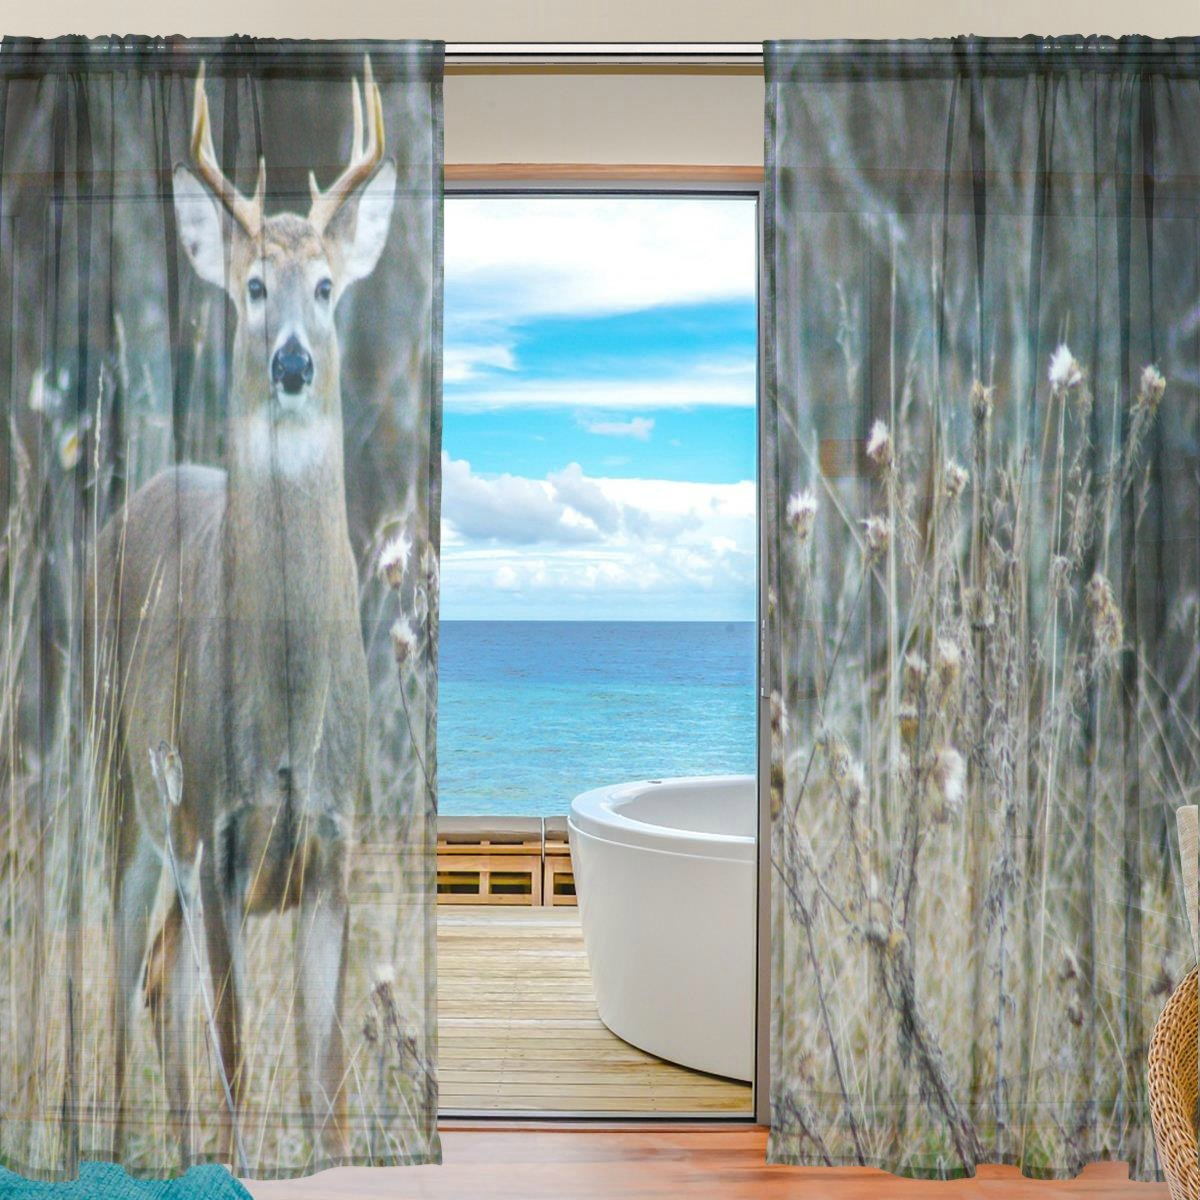 SEULIFE Window Sheer Curtain, Wild Animal Deer Antler Voile Curtain Drapes for Door Kitchen Living Room Bedroom 55x78 inches 2 Panels